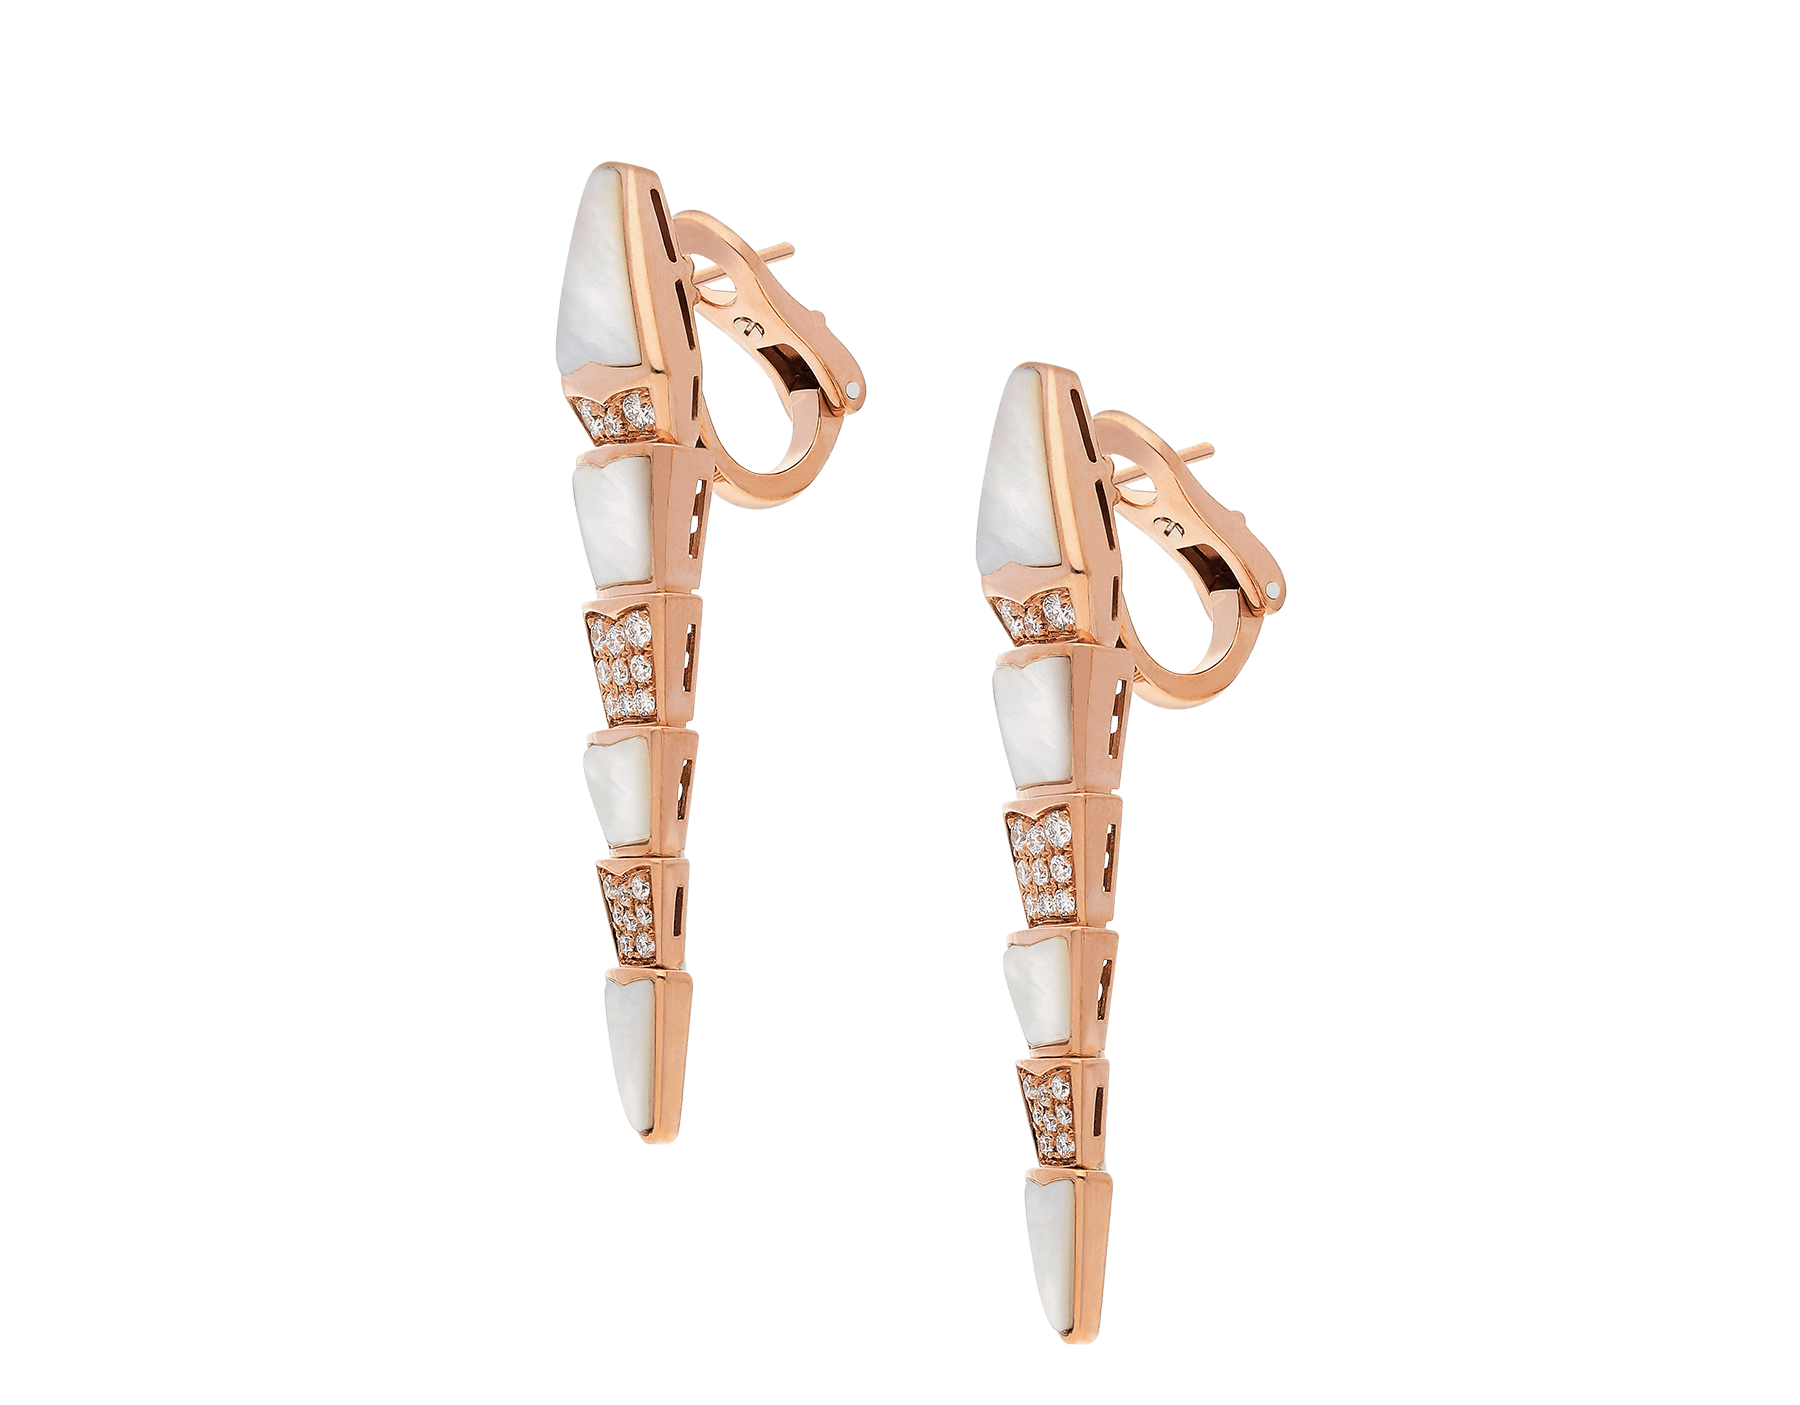 Serpenti earrings in 18 kt rose-gold set with mother-of-pearl elements and pavé diamonds. 350678 image 2